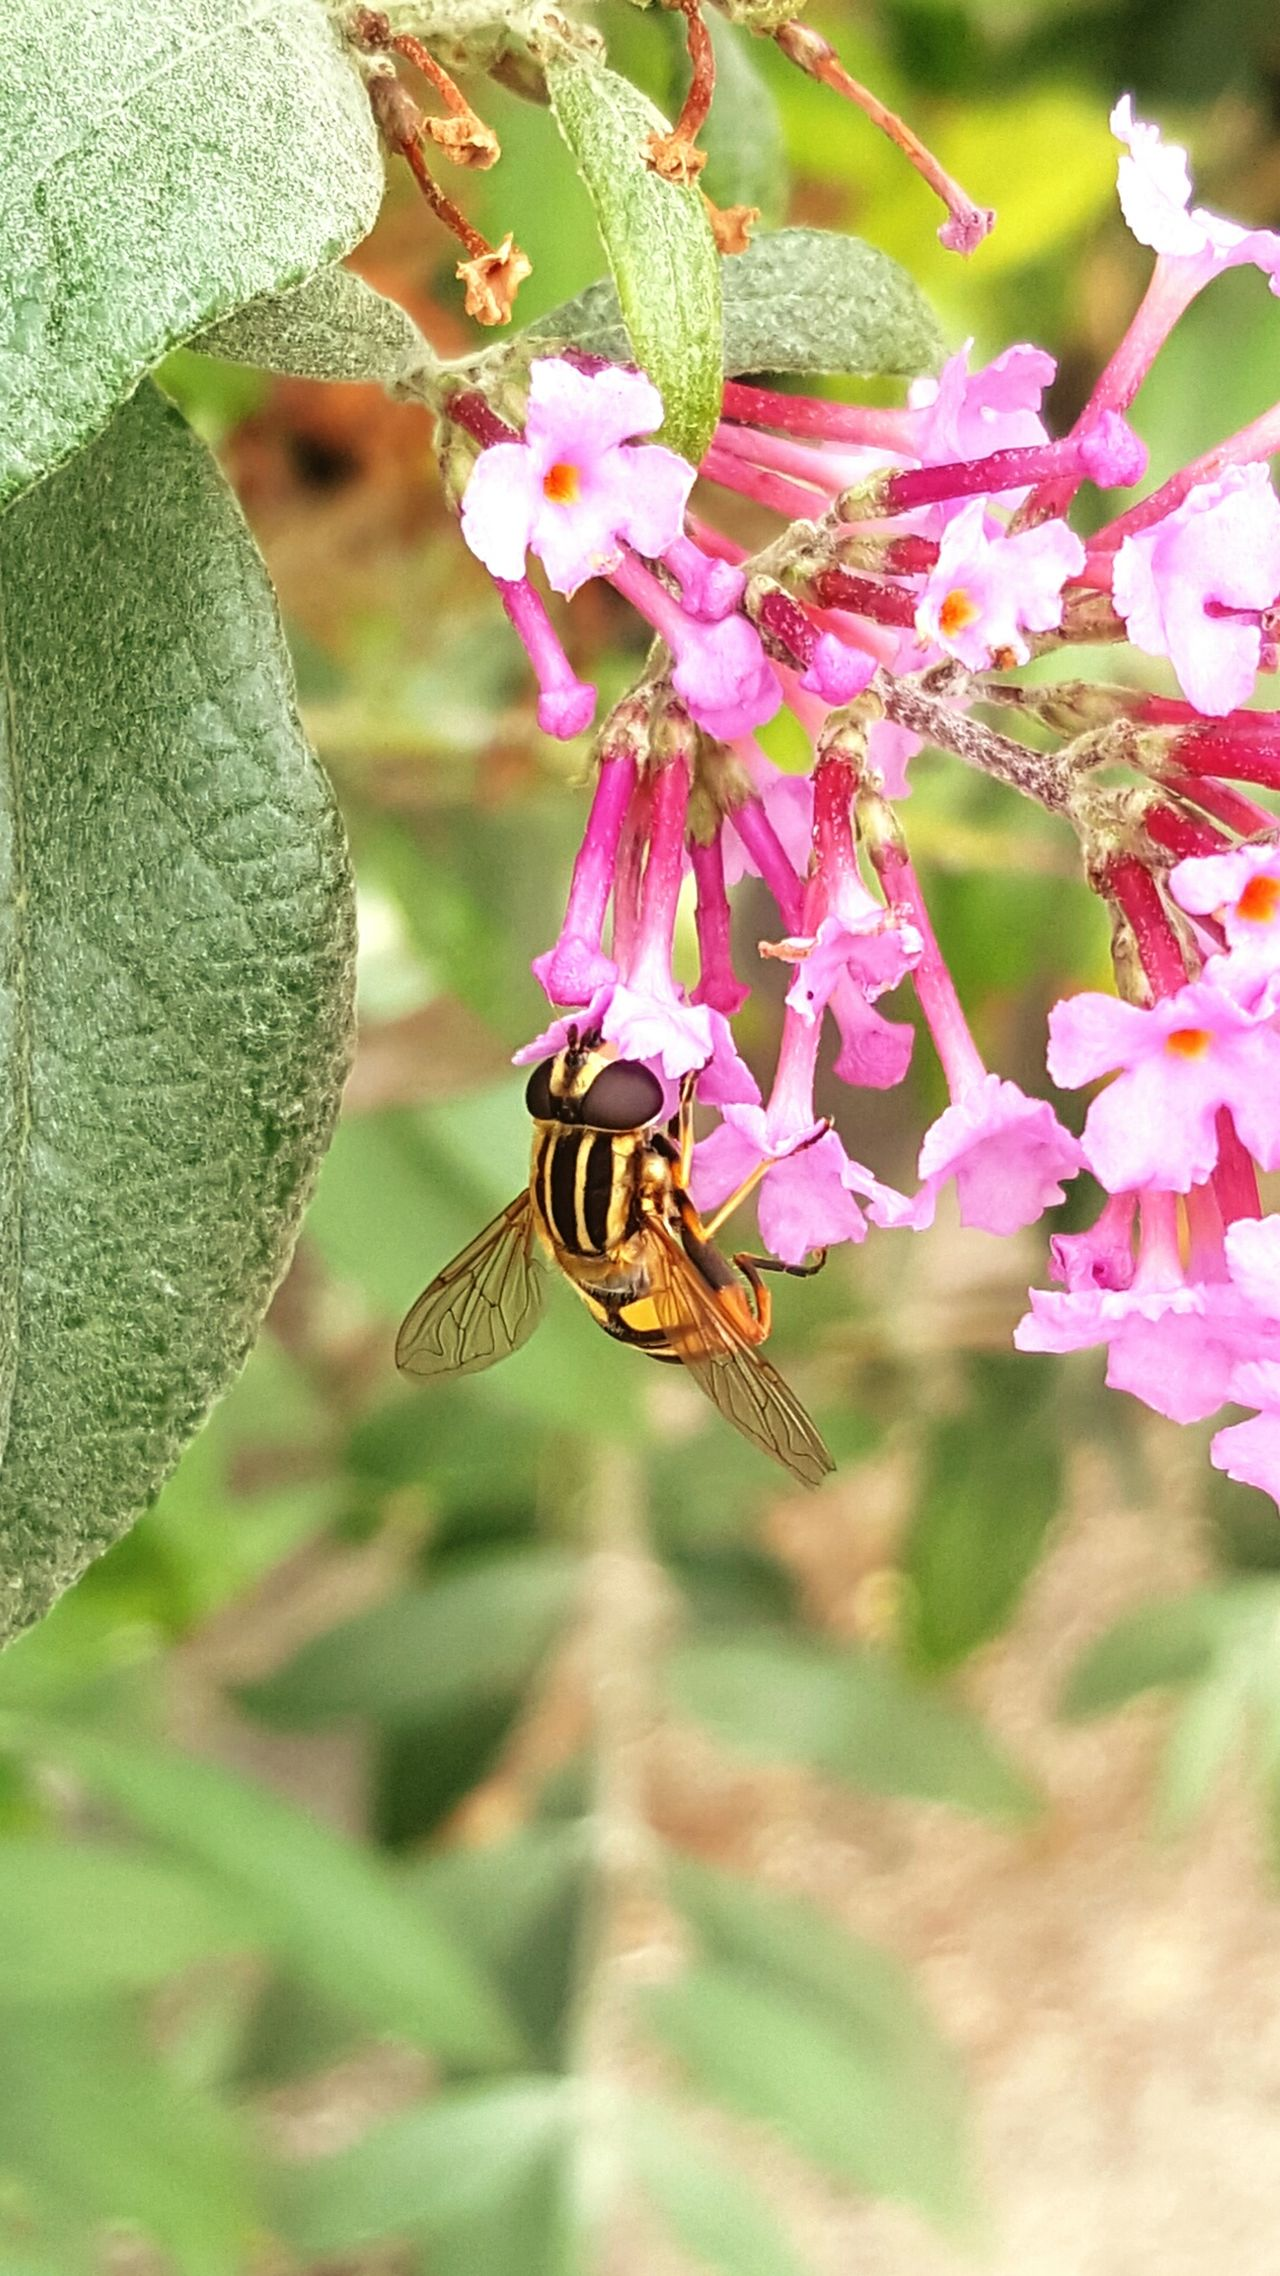 Flower Insect Selective Focus Smartphone Photography Samsung Galaxy S6 Plants Wasp Macro Wasp Pinkflower One Animal Pollination Beauty In Nature ThewayIseethings Beauty In Ordinary Things Beauty In Nature Flowers